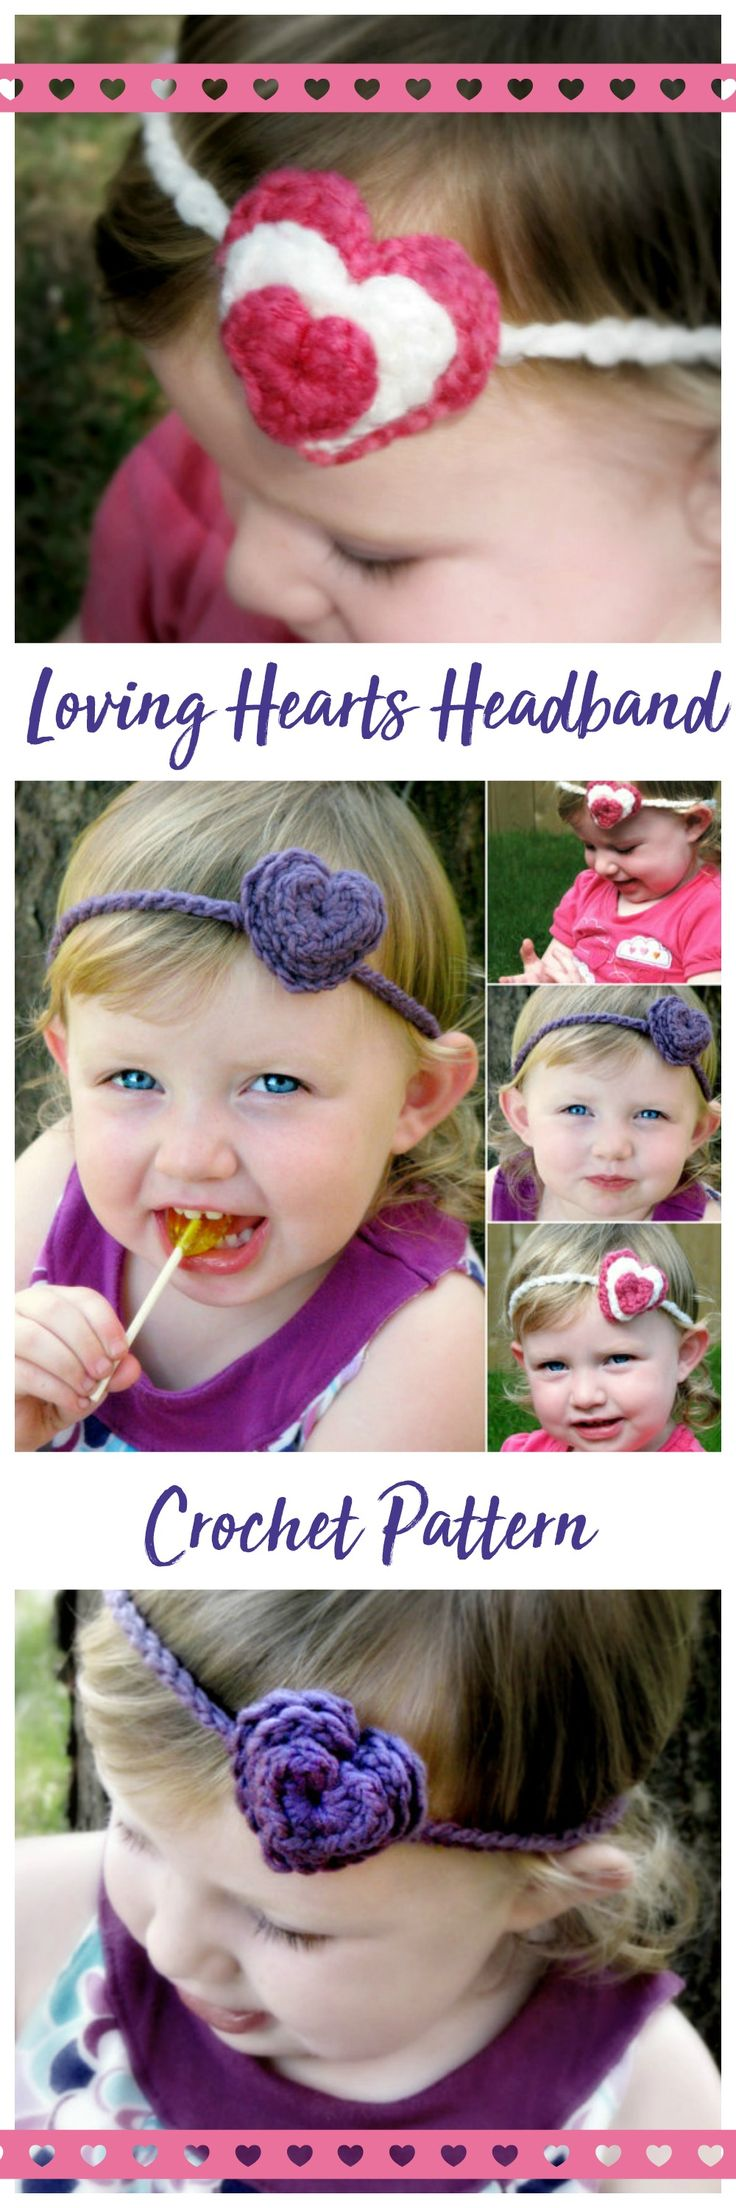 Sweet downloadable crochet pattern! Loving Hearts 3 Layer Hearts Headband. #etsy #etsyseller #ad #crochet #handmade #hearts #love #valentine #valentinesday